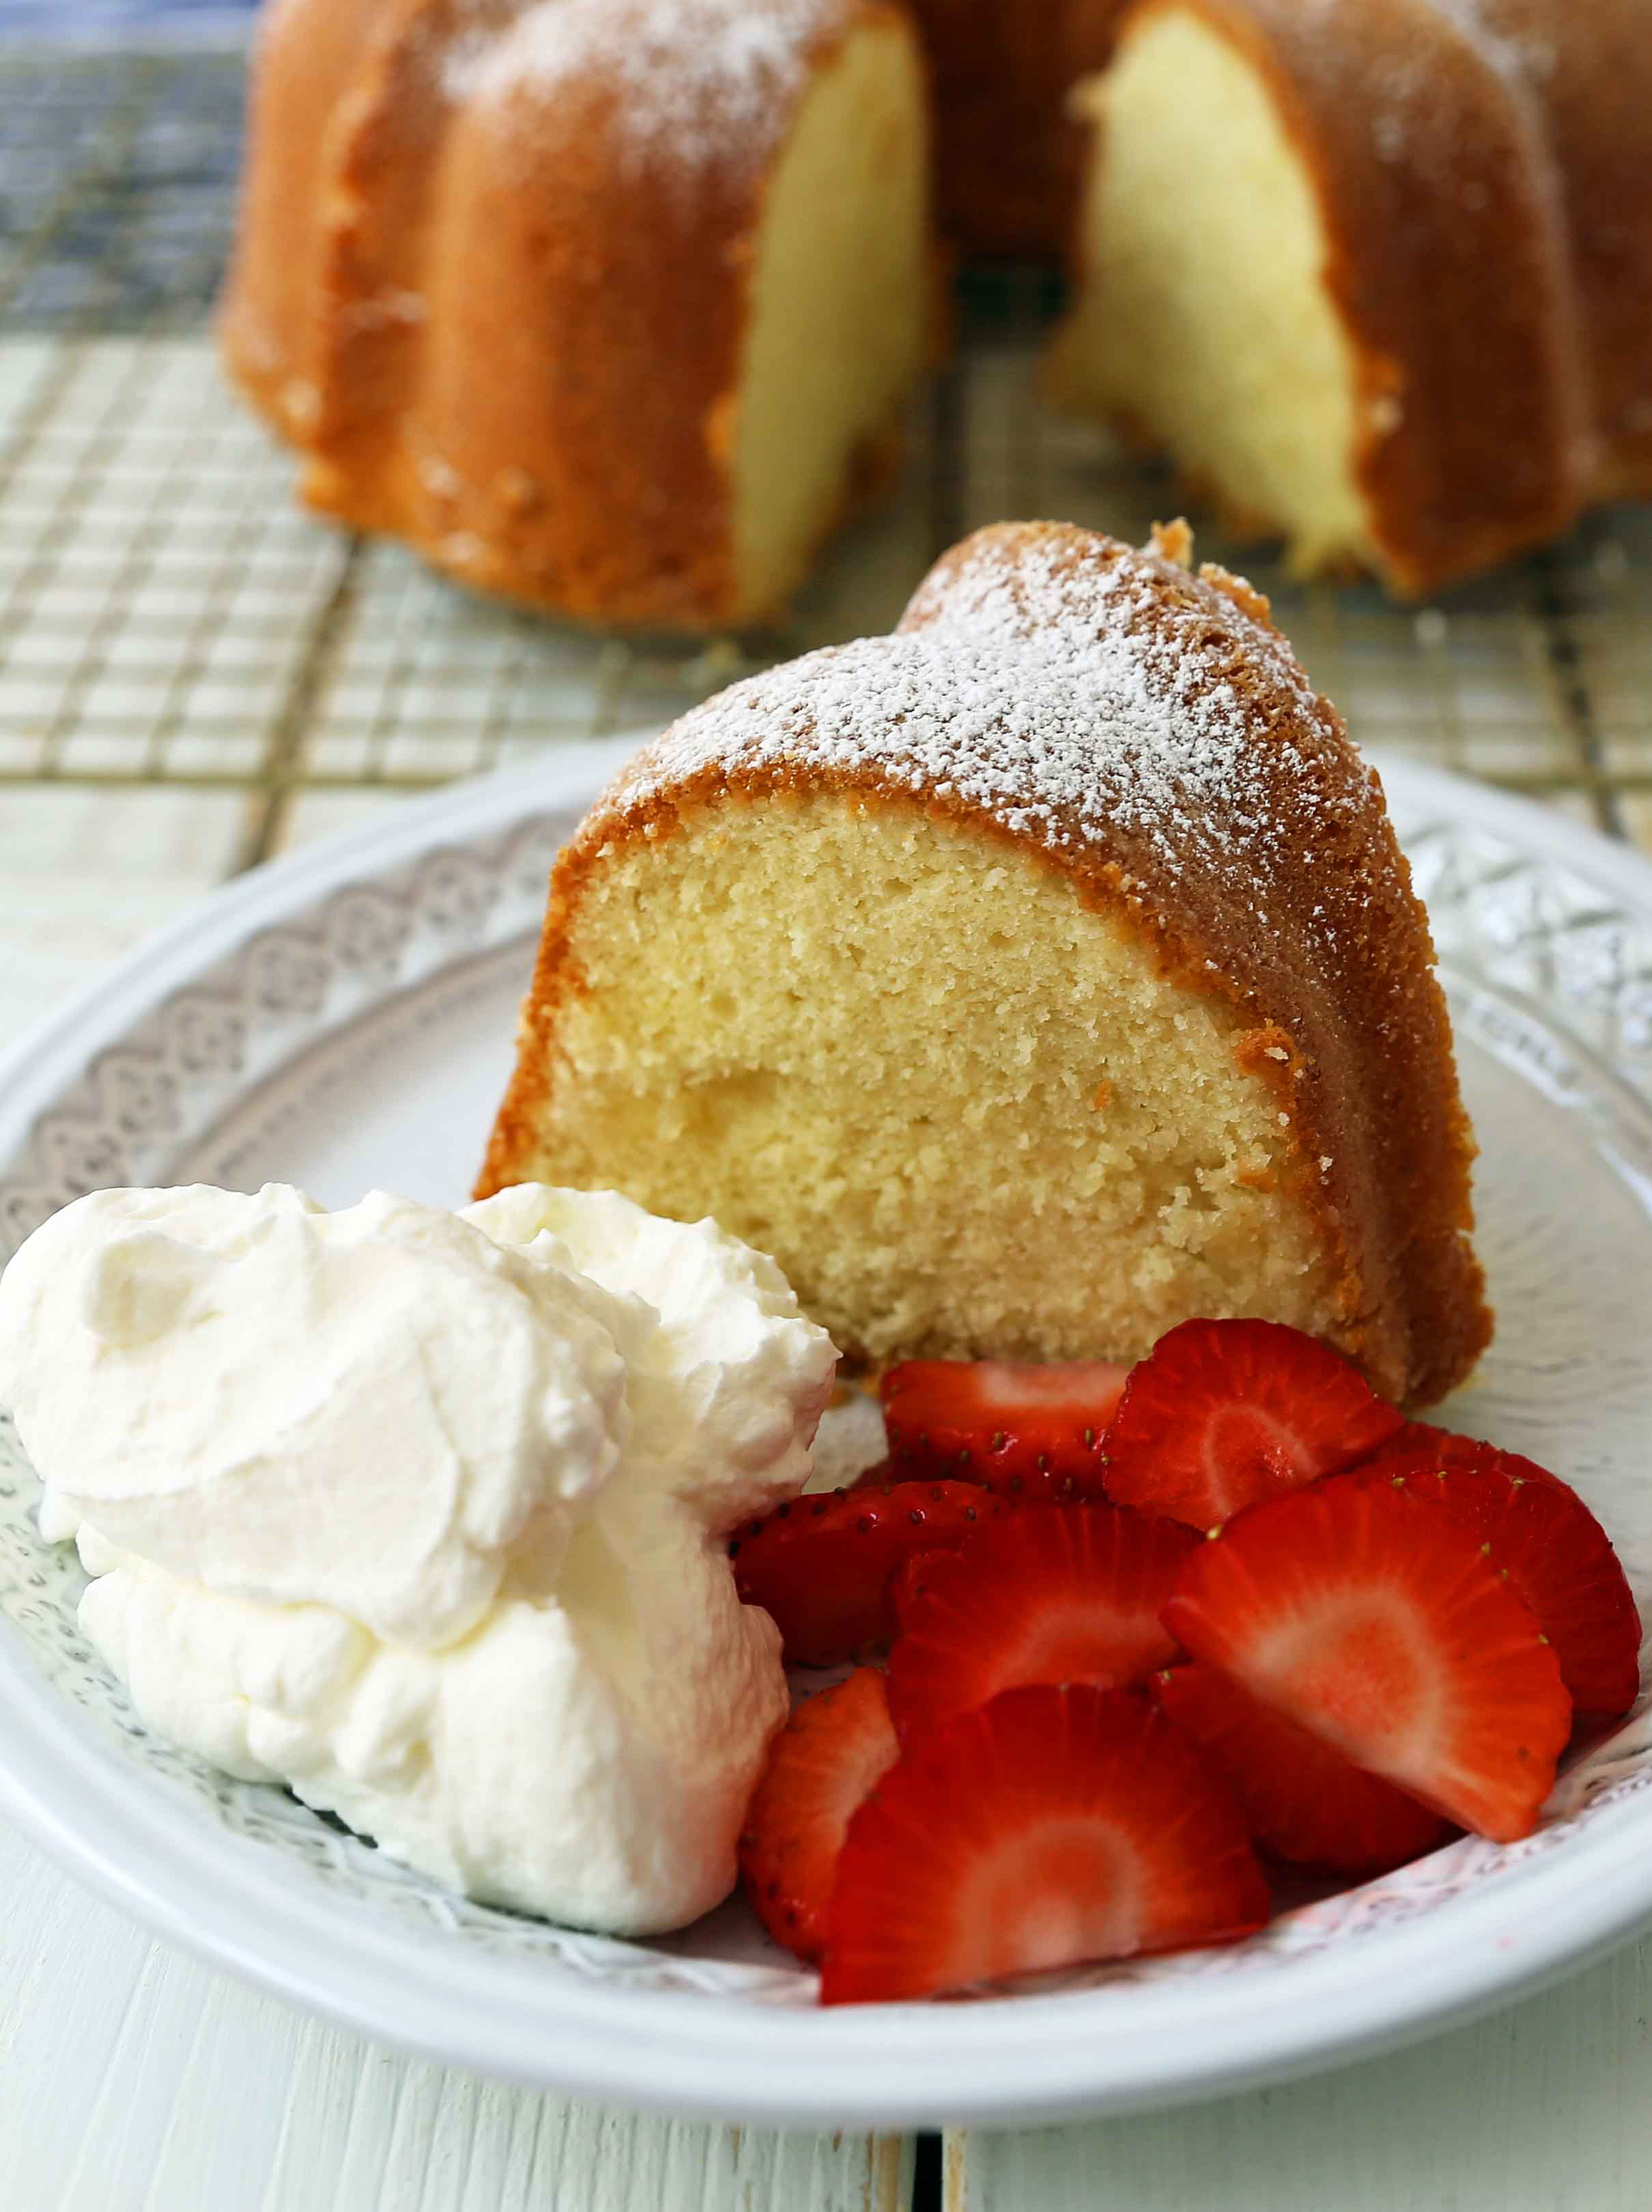 The BEST Cream Cheese Pound Cake. How to make the perfect pound cake in a bundt pan. Buttery cream cheese pound cake goes with everything! This is such a popular cake that is wonderful on its own or in a trifle or berry compote. www.modernhoney.com #poundcake #bundtcake #cake #creamcheesecake